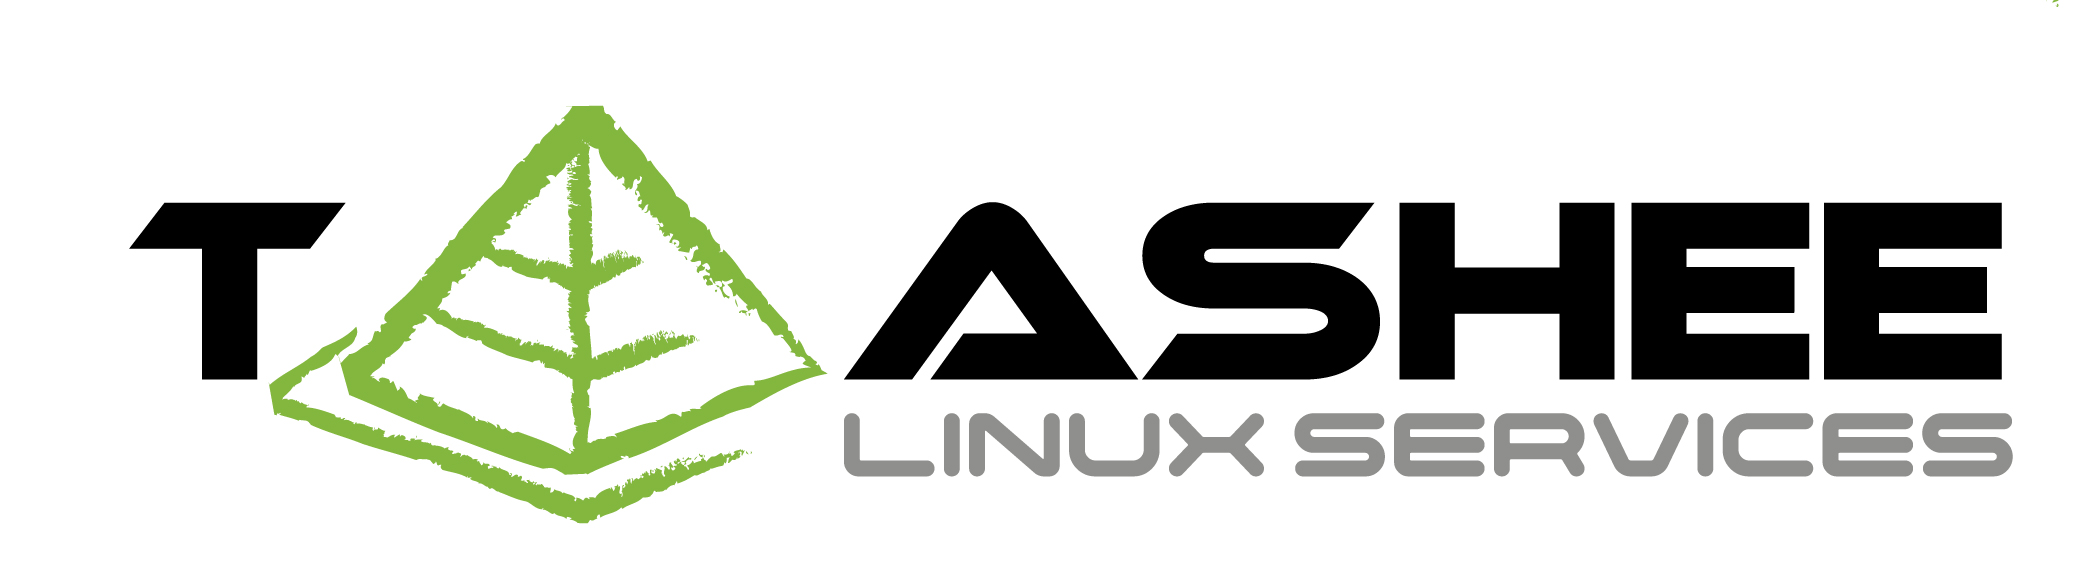 Taashee Linux Services logo